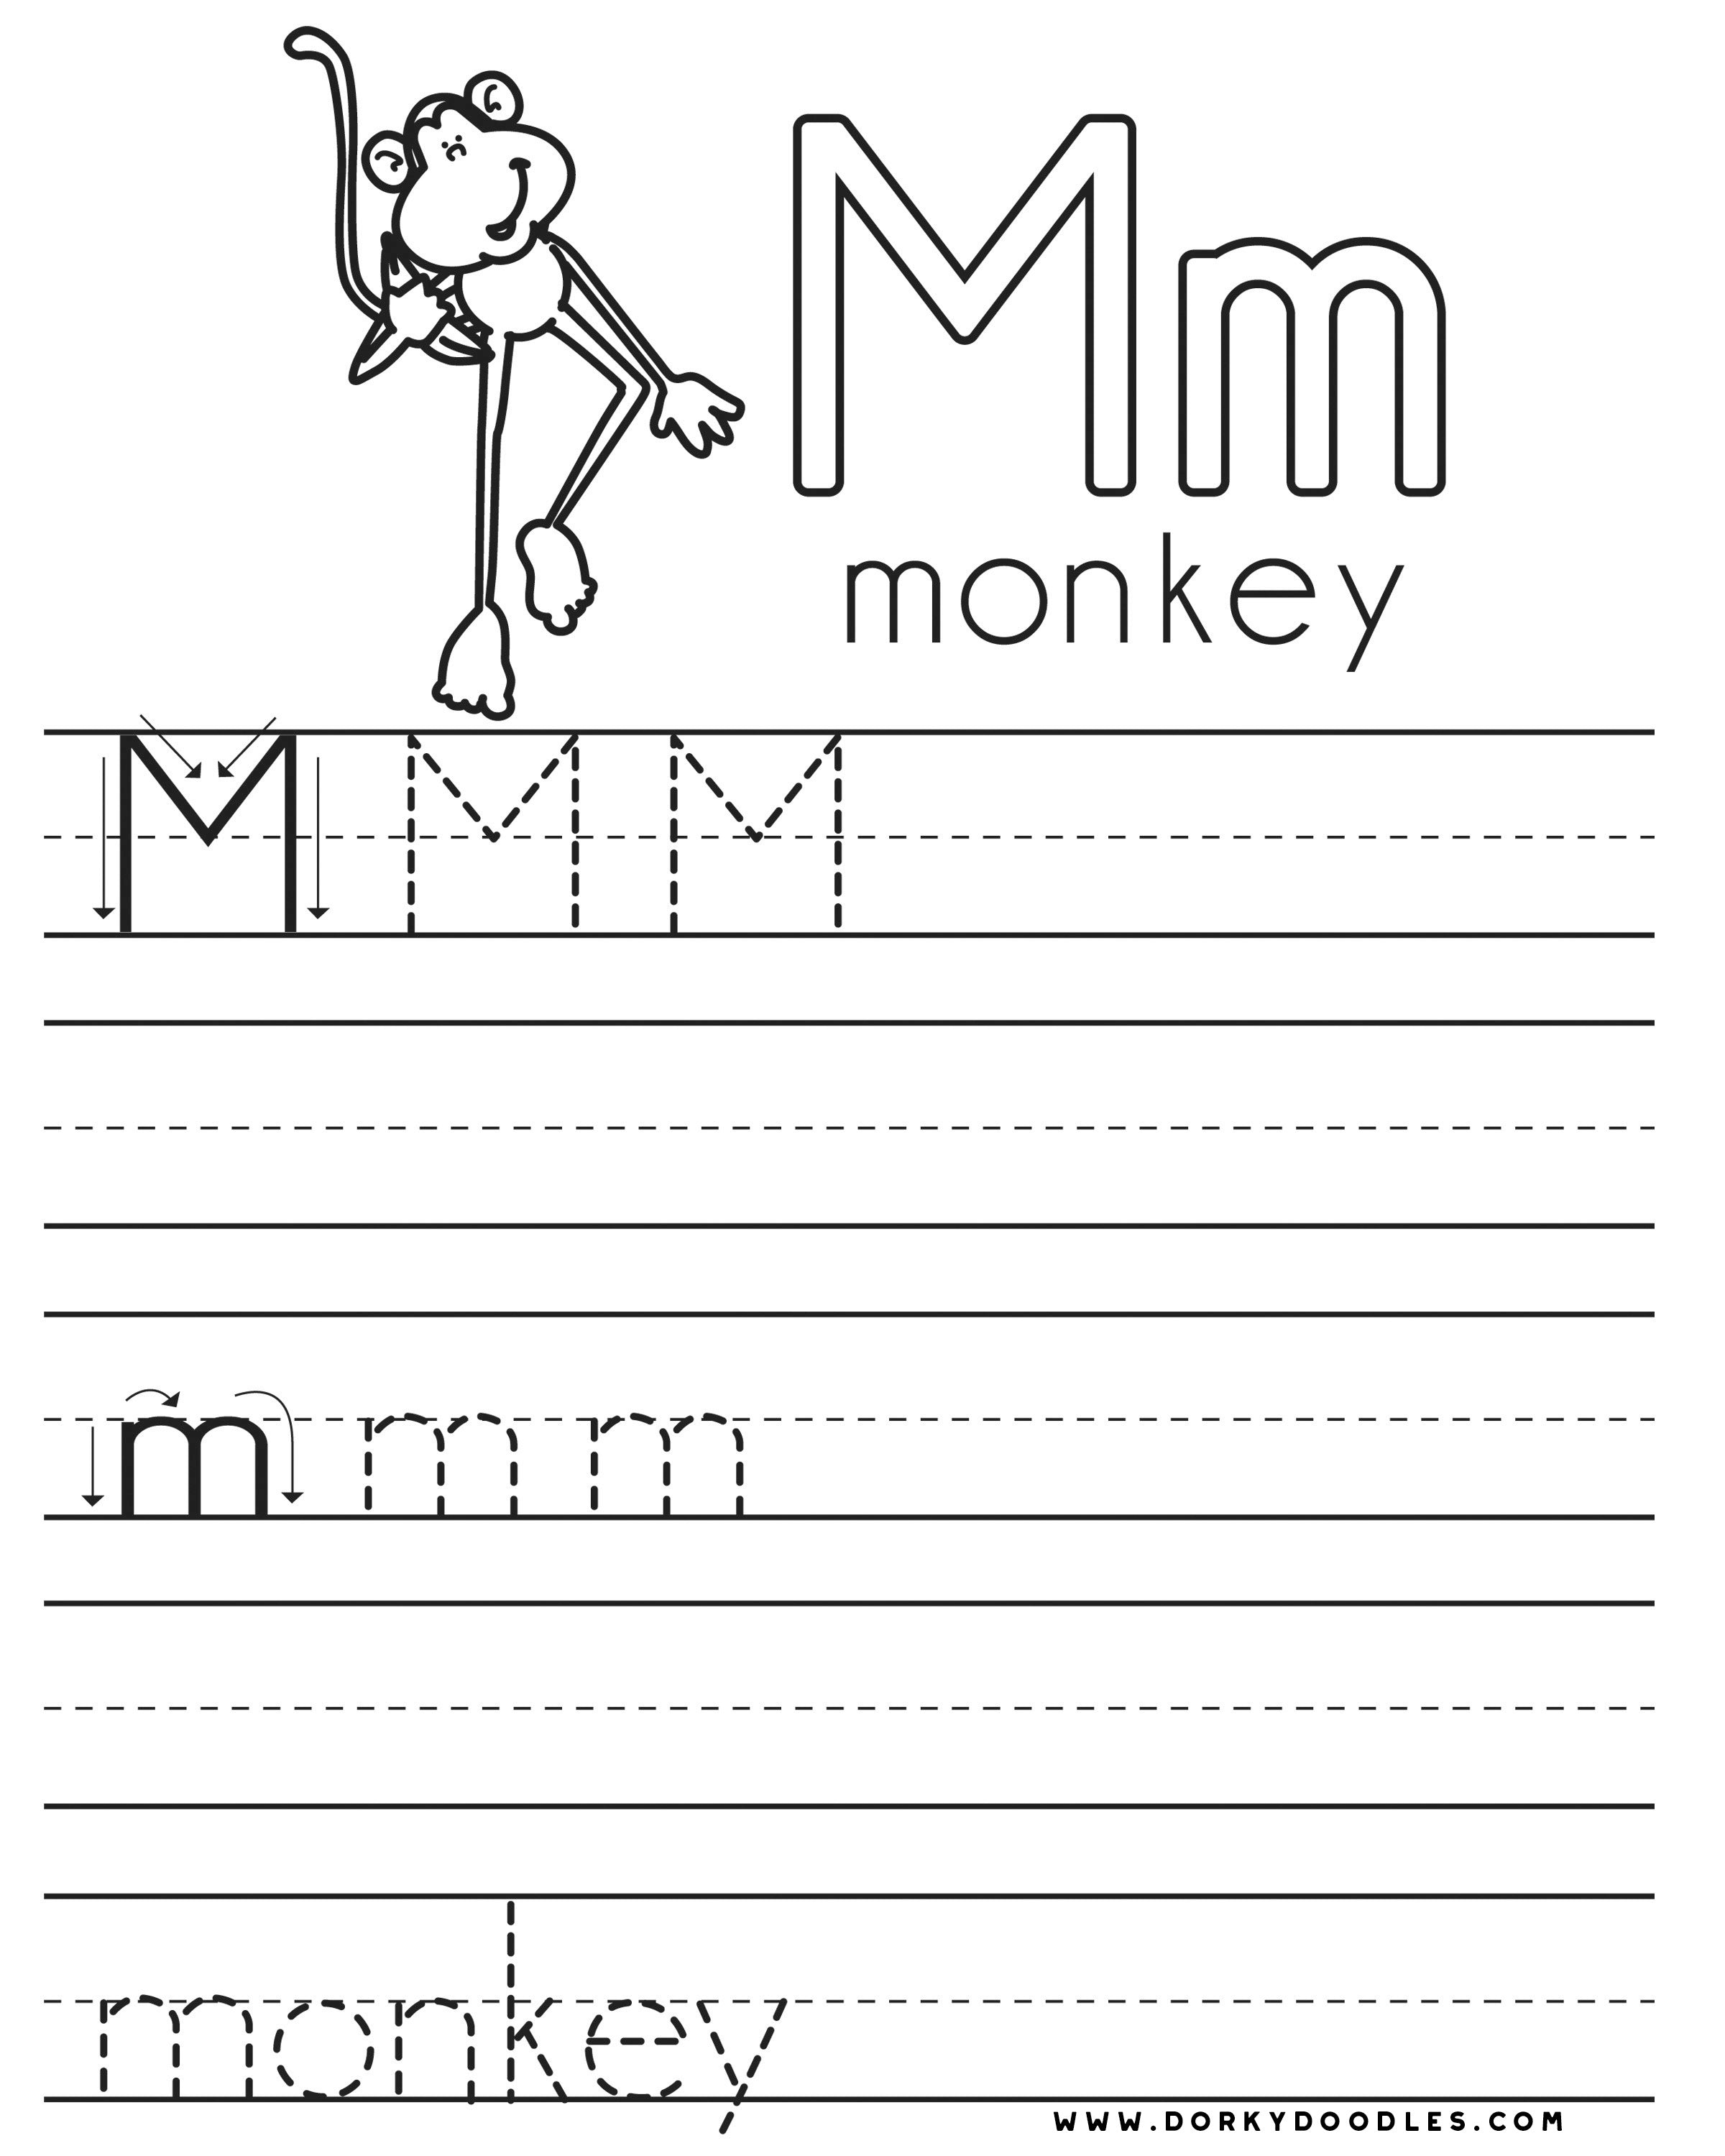 Worksheets Letter Practice letter practice m worksheets dorky doodles and right click this image to print our free coloring page